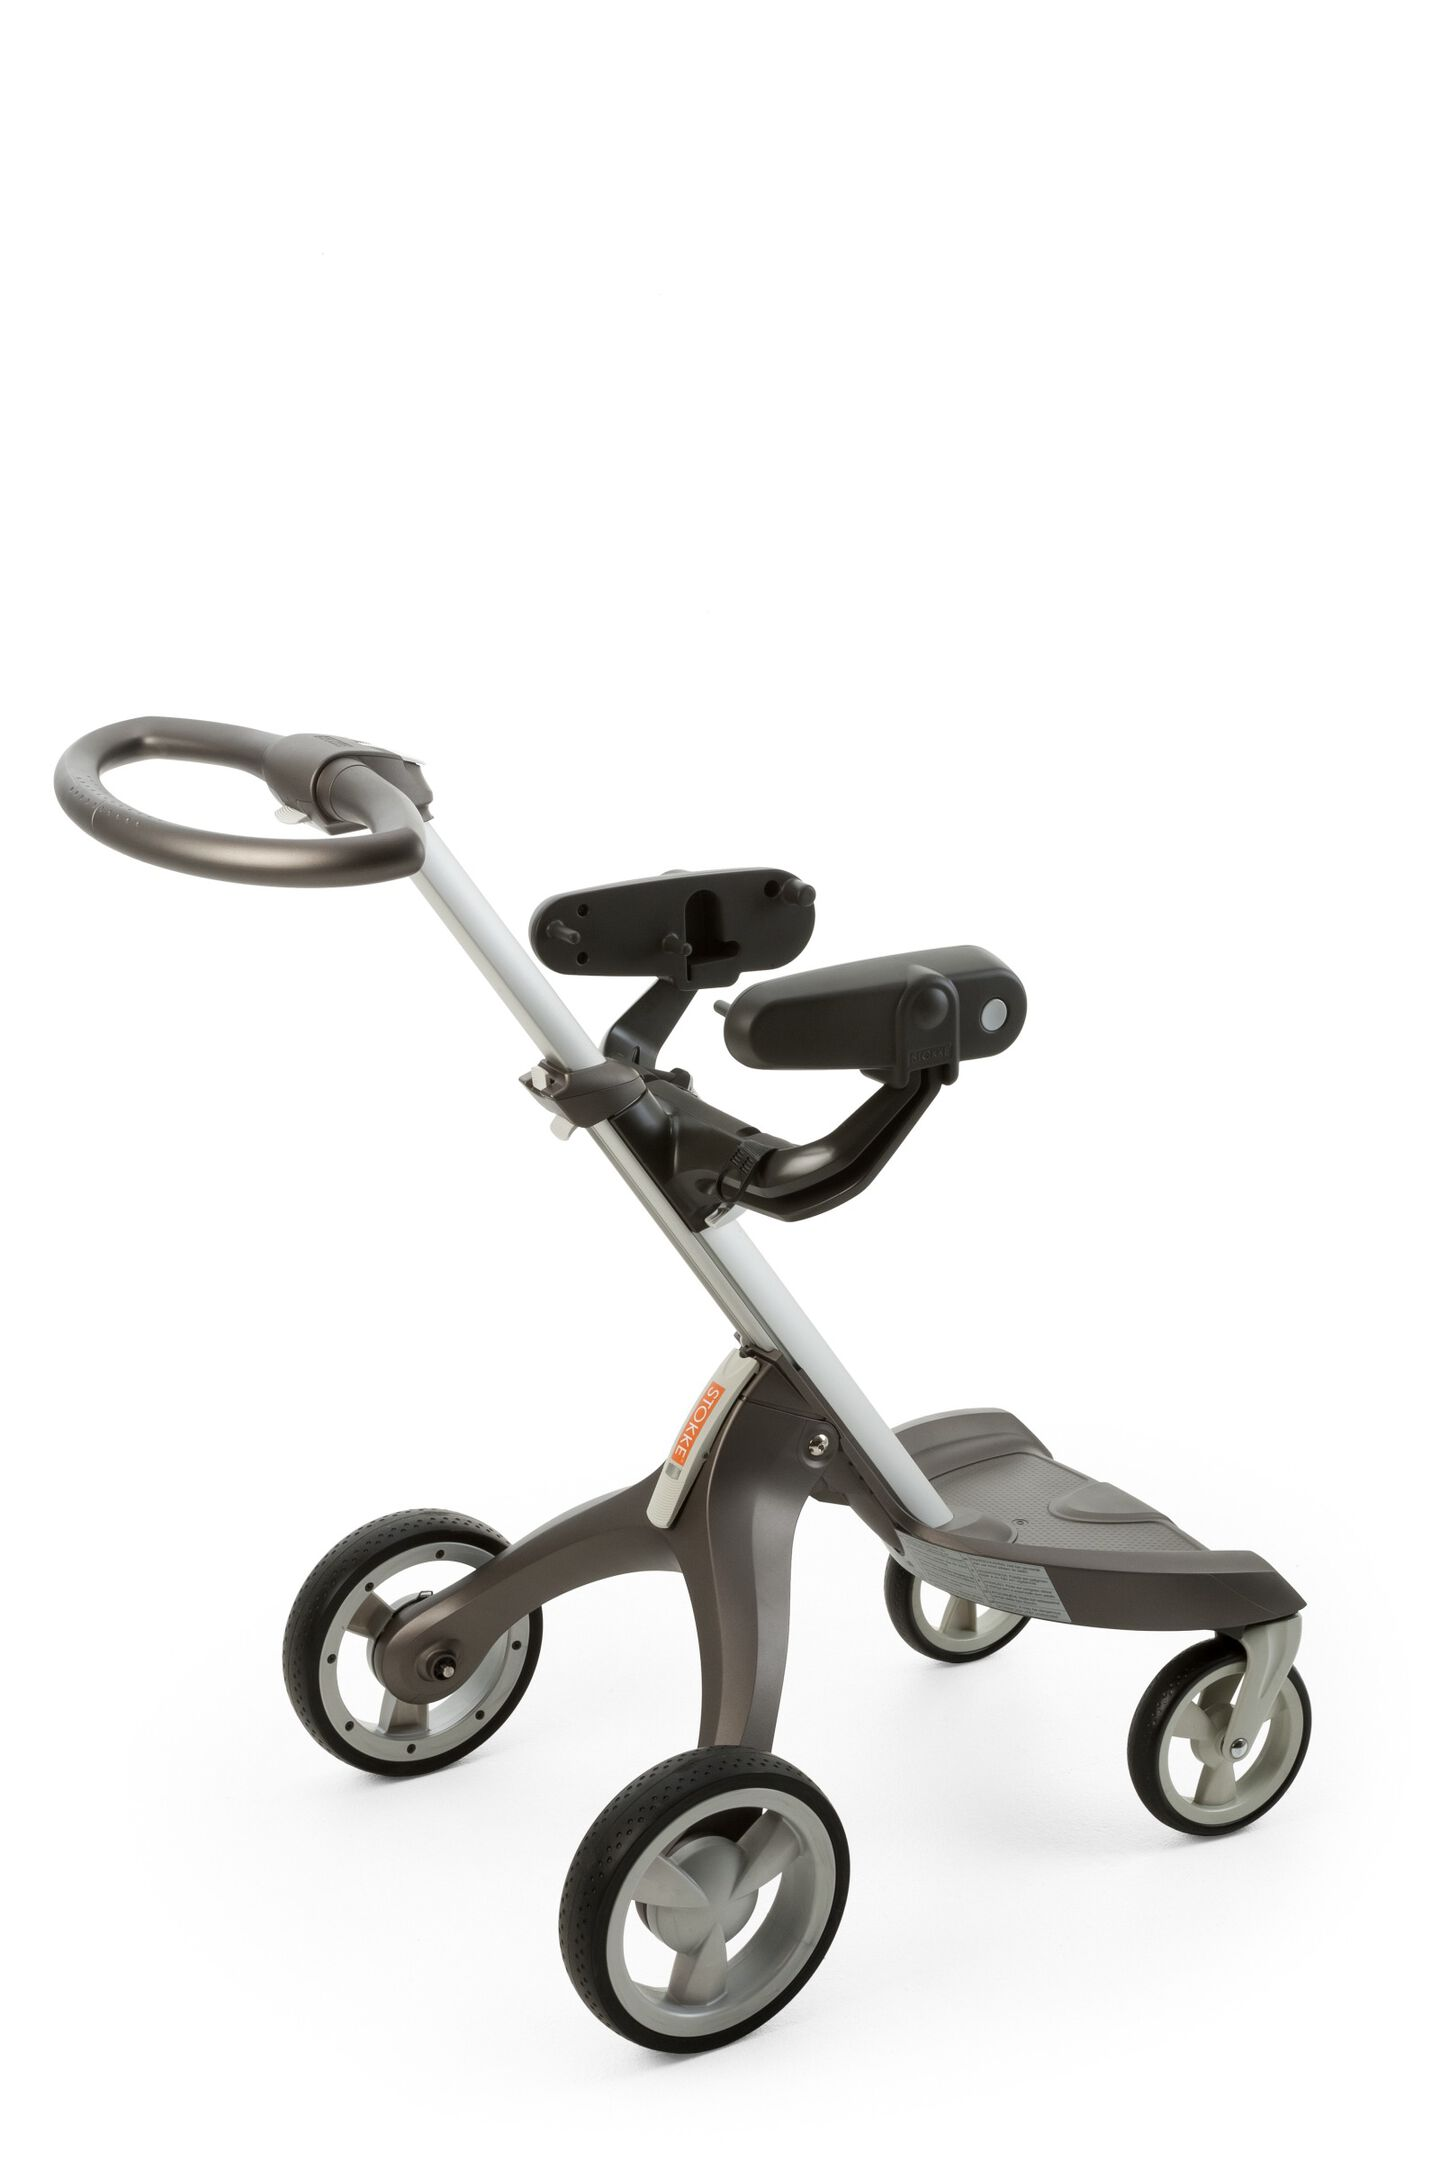 Stokke® Xplory® Chassis with car seat adaptor for Peg Perego car seat.